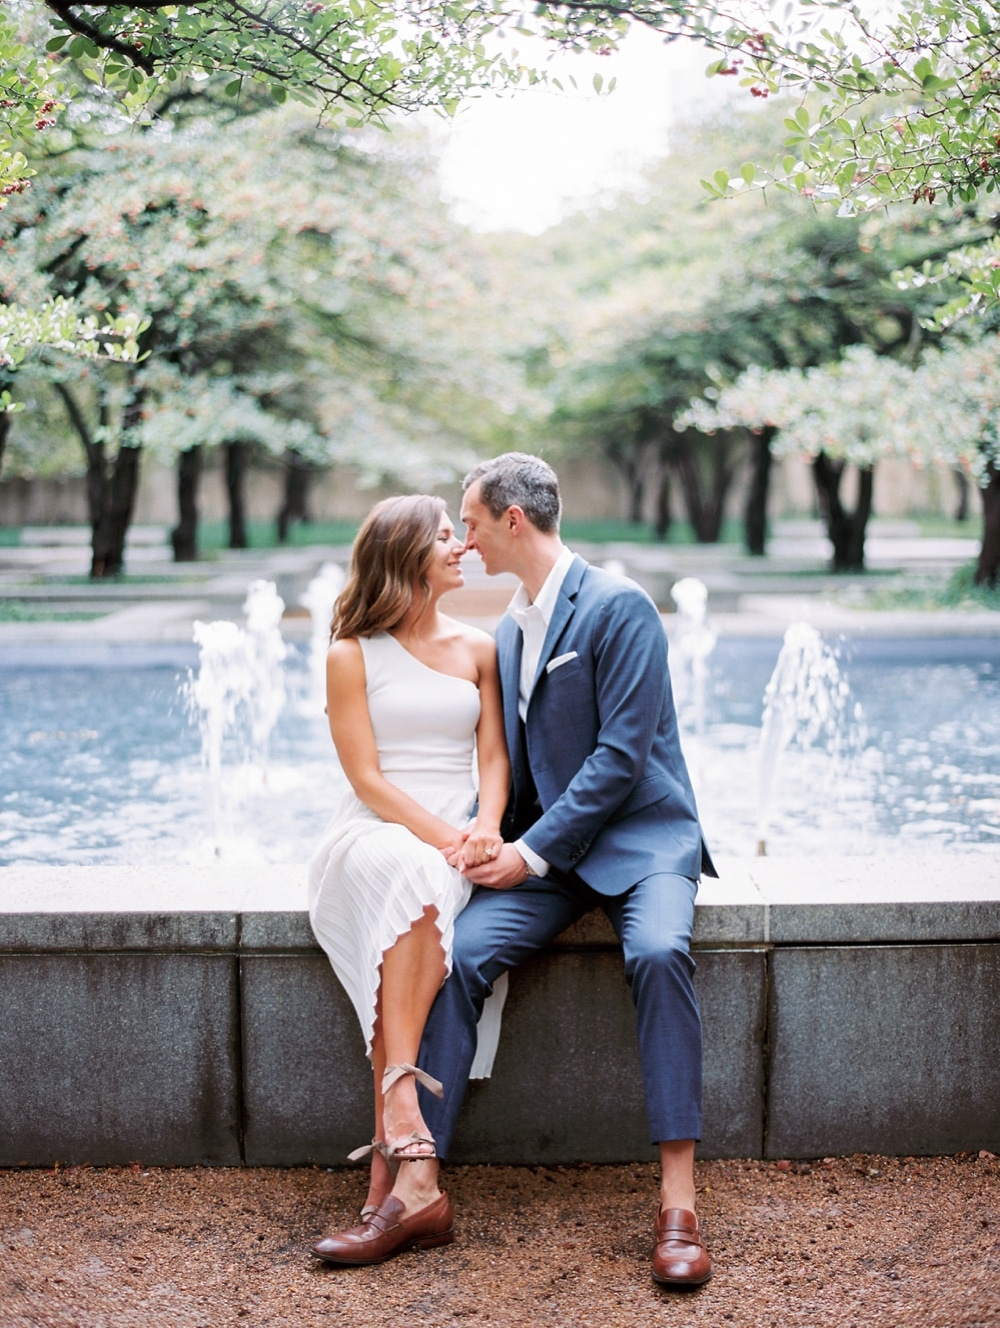 Kristin-La-Voie-Photography-chicago-art-institute-engagement-wedding-photos-50